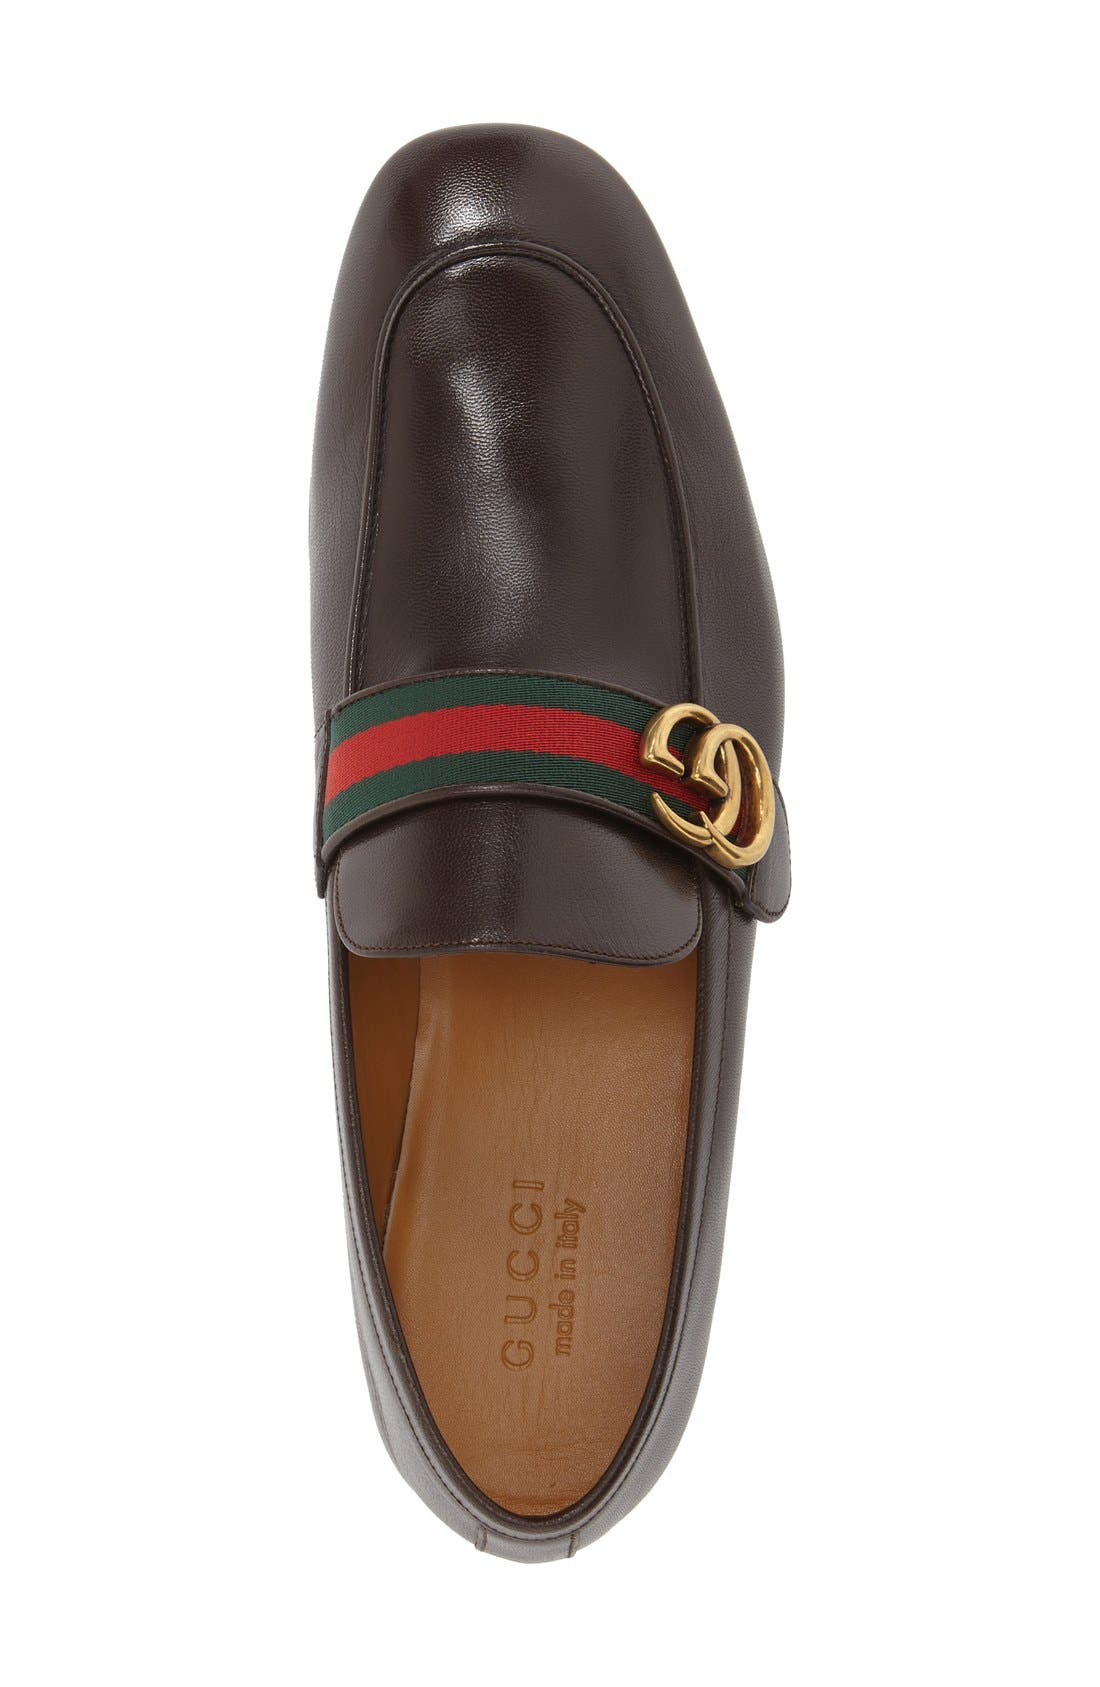 Donnie Bit Loafer,                             Alternate thumbnail 3, color,                             Cocoa Leather